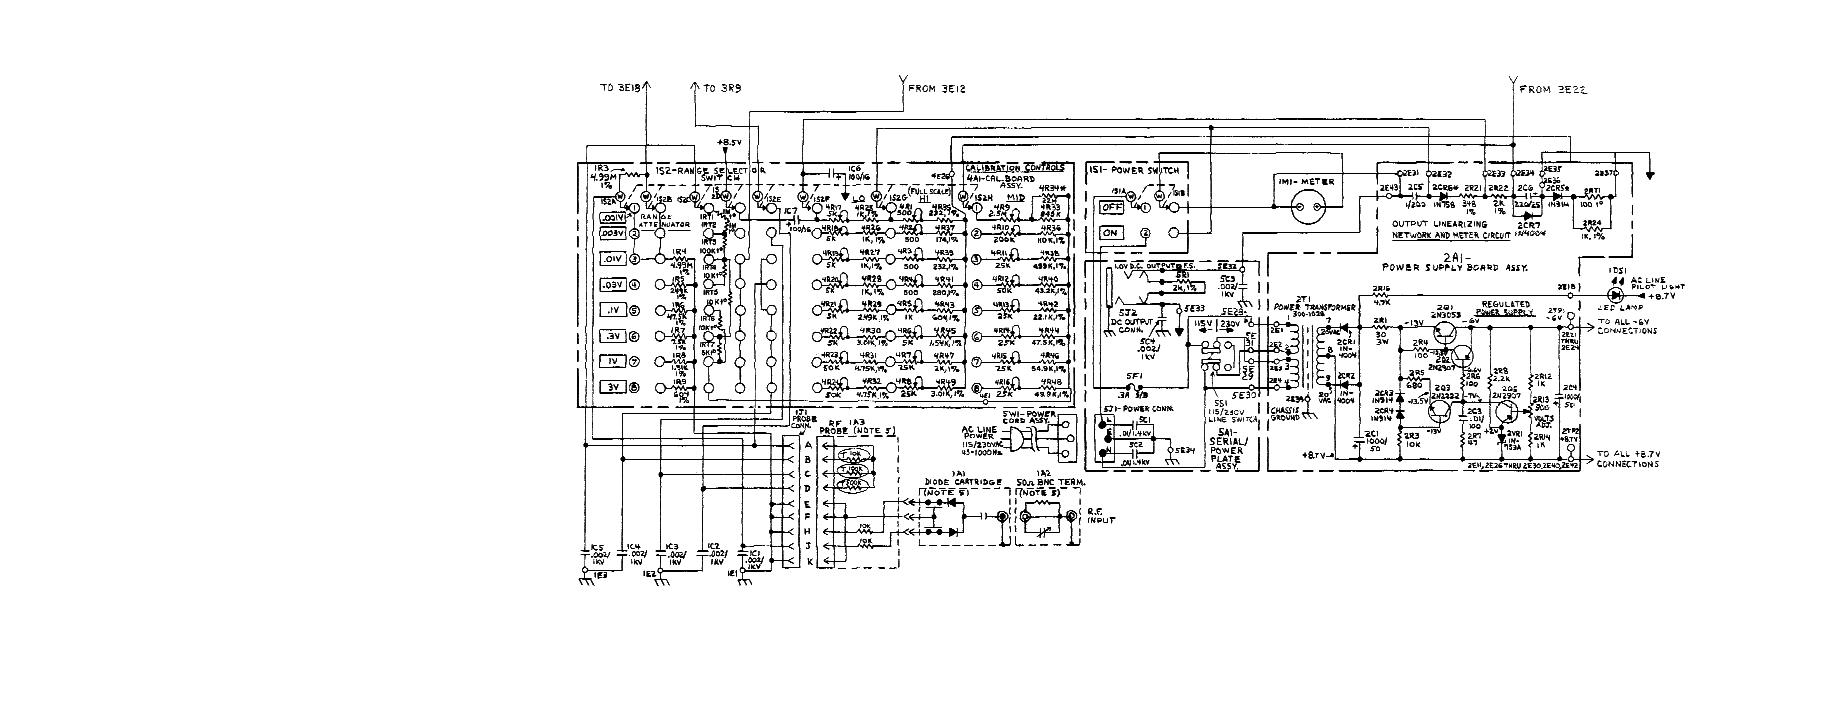 Power Supply Page 13 Circuits 31 Nextgr Schematic Diagram Of Board Assembly Range Switch And Ower